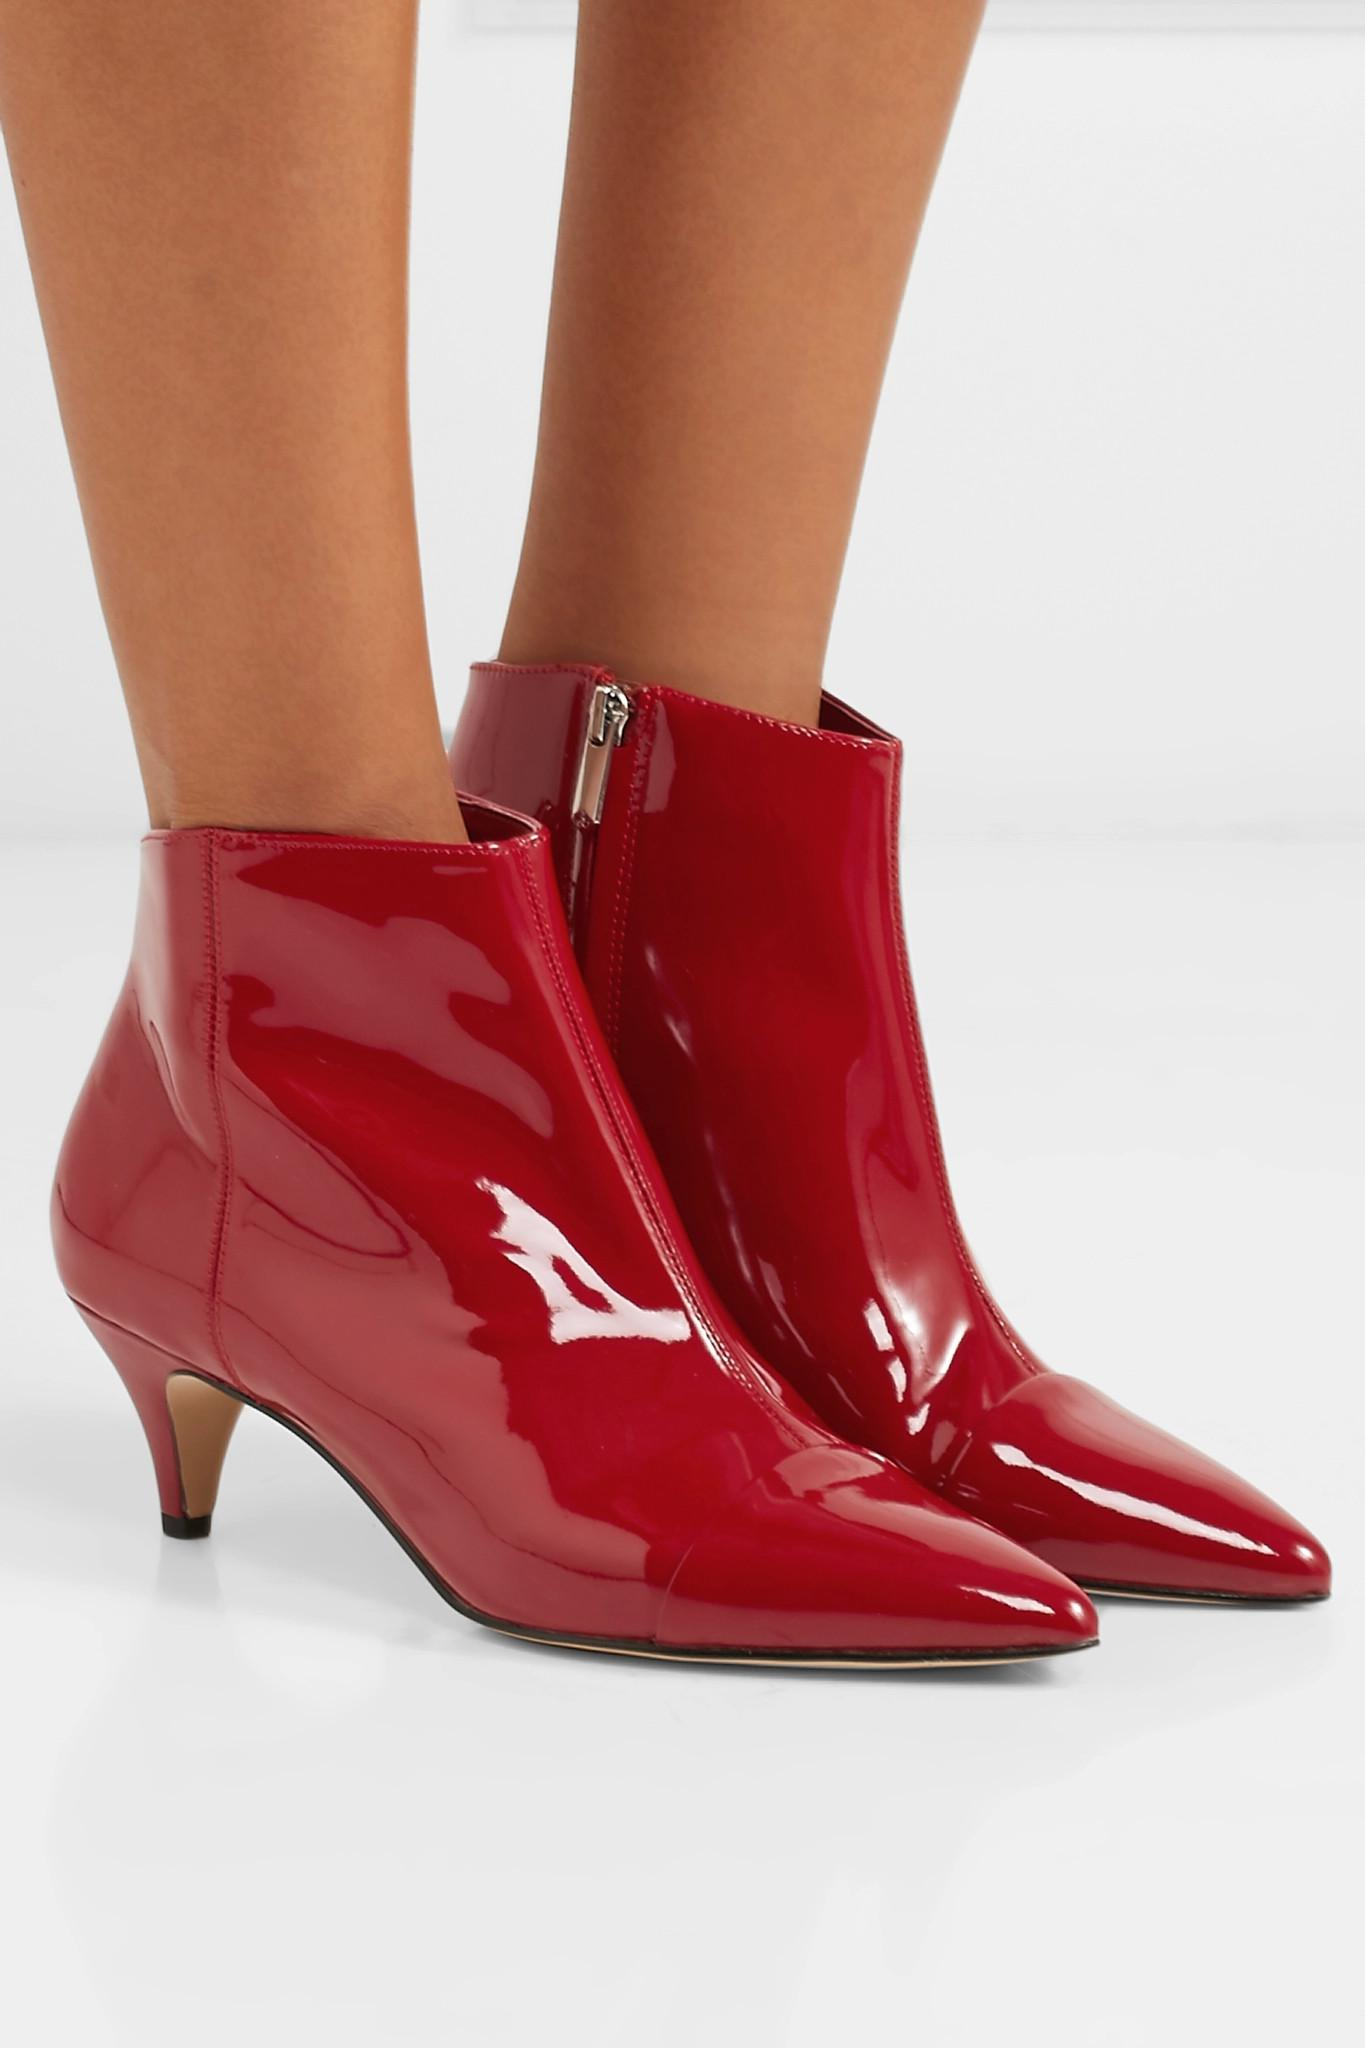 0a7ed2a2c Lyst - Sam Edelman Kinzey Patent-leather Ankle Boots in Red